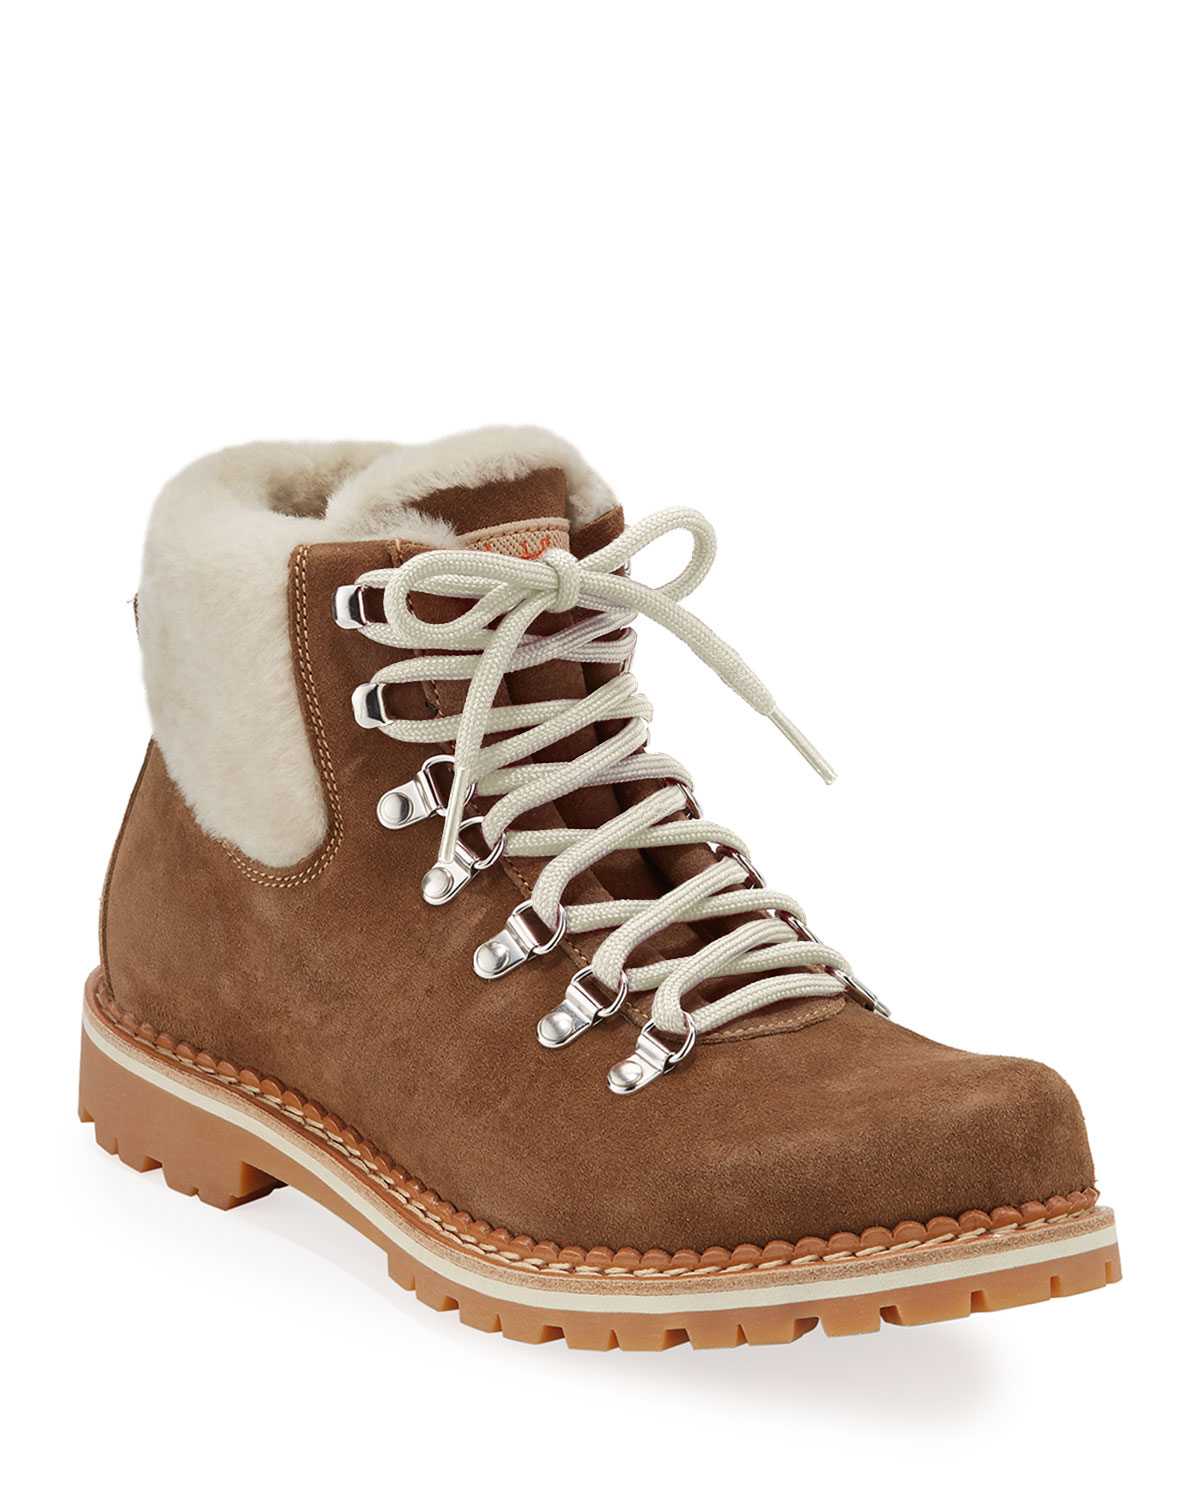 Camelia Boots with Shearling